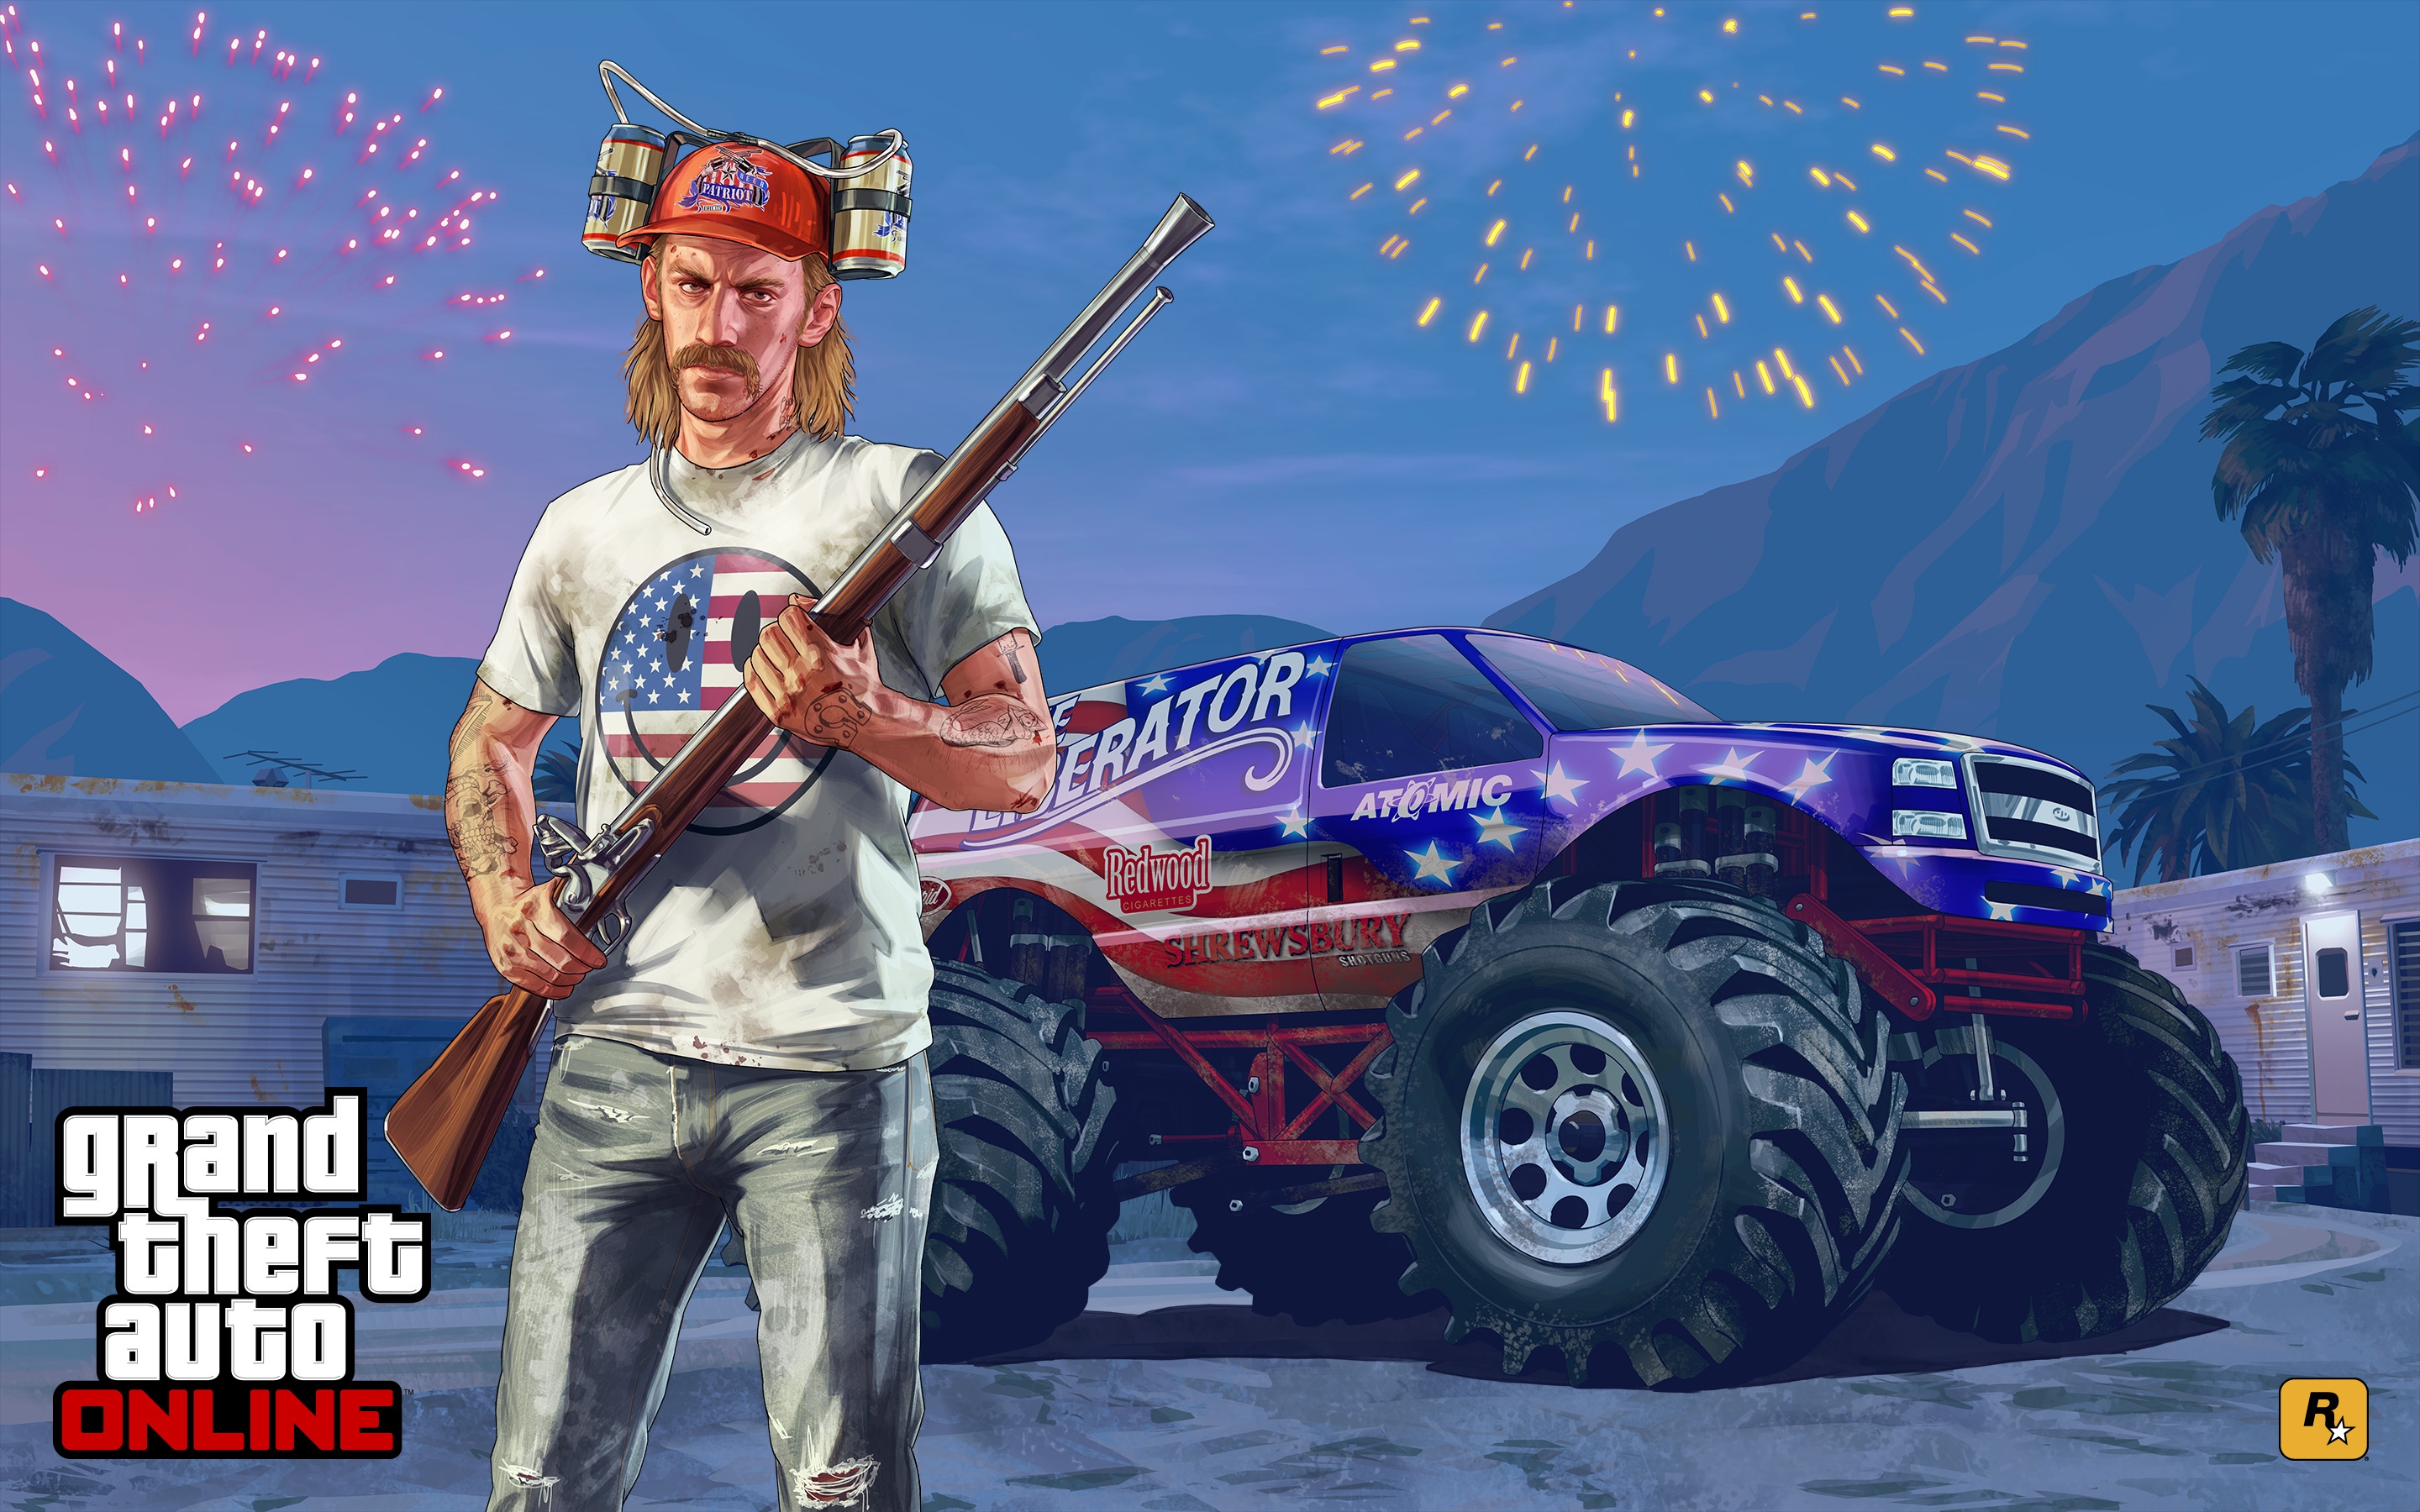 Official gta 5 artwork official artwork independence day voltagebd Image collections